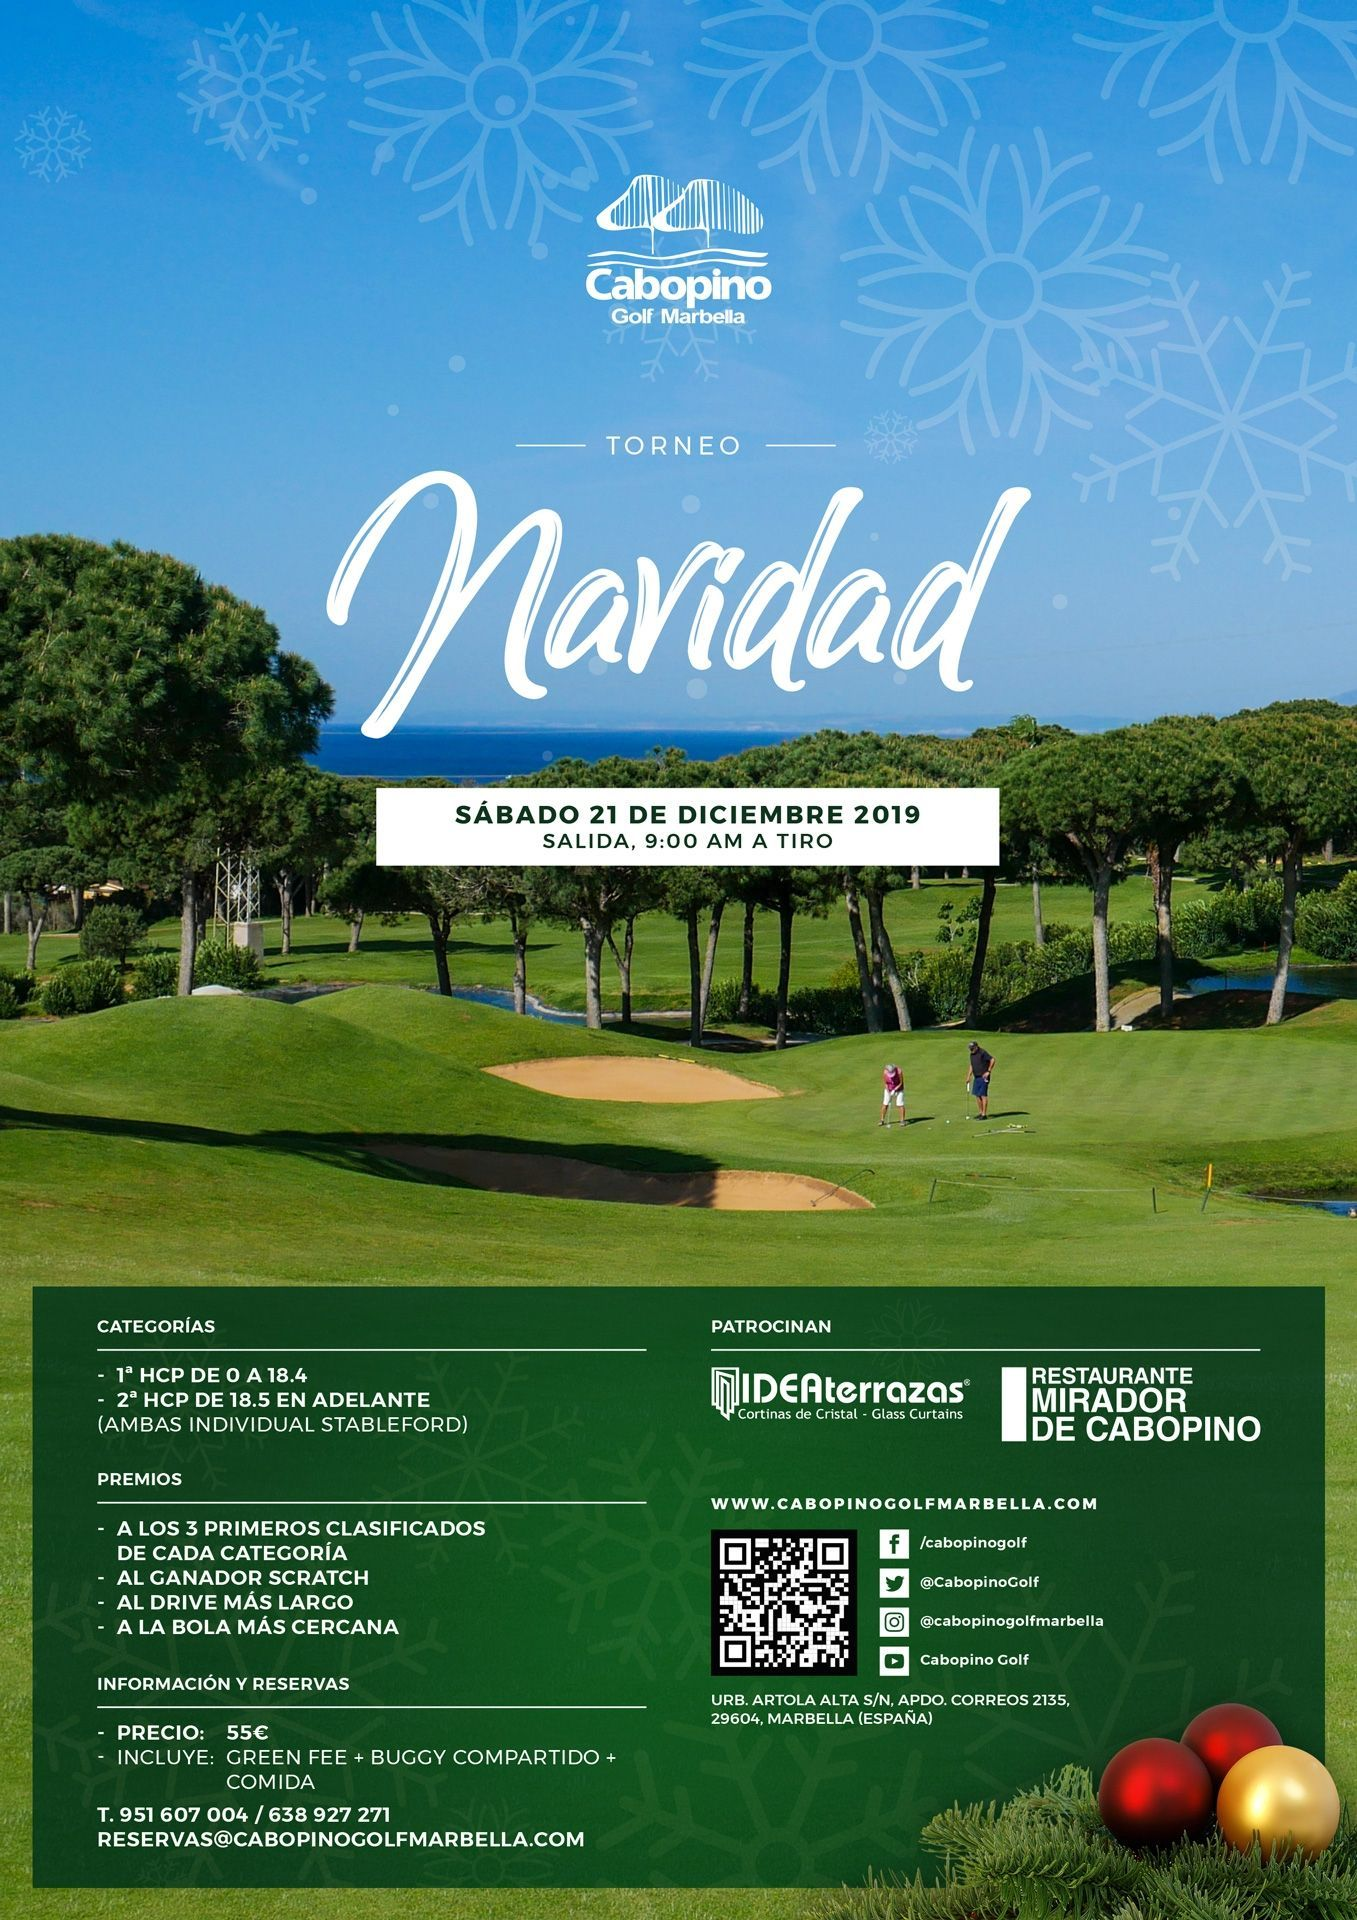 Cabopino Golf 2019 Christmas Tournament